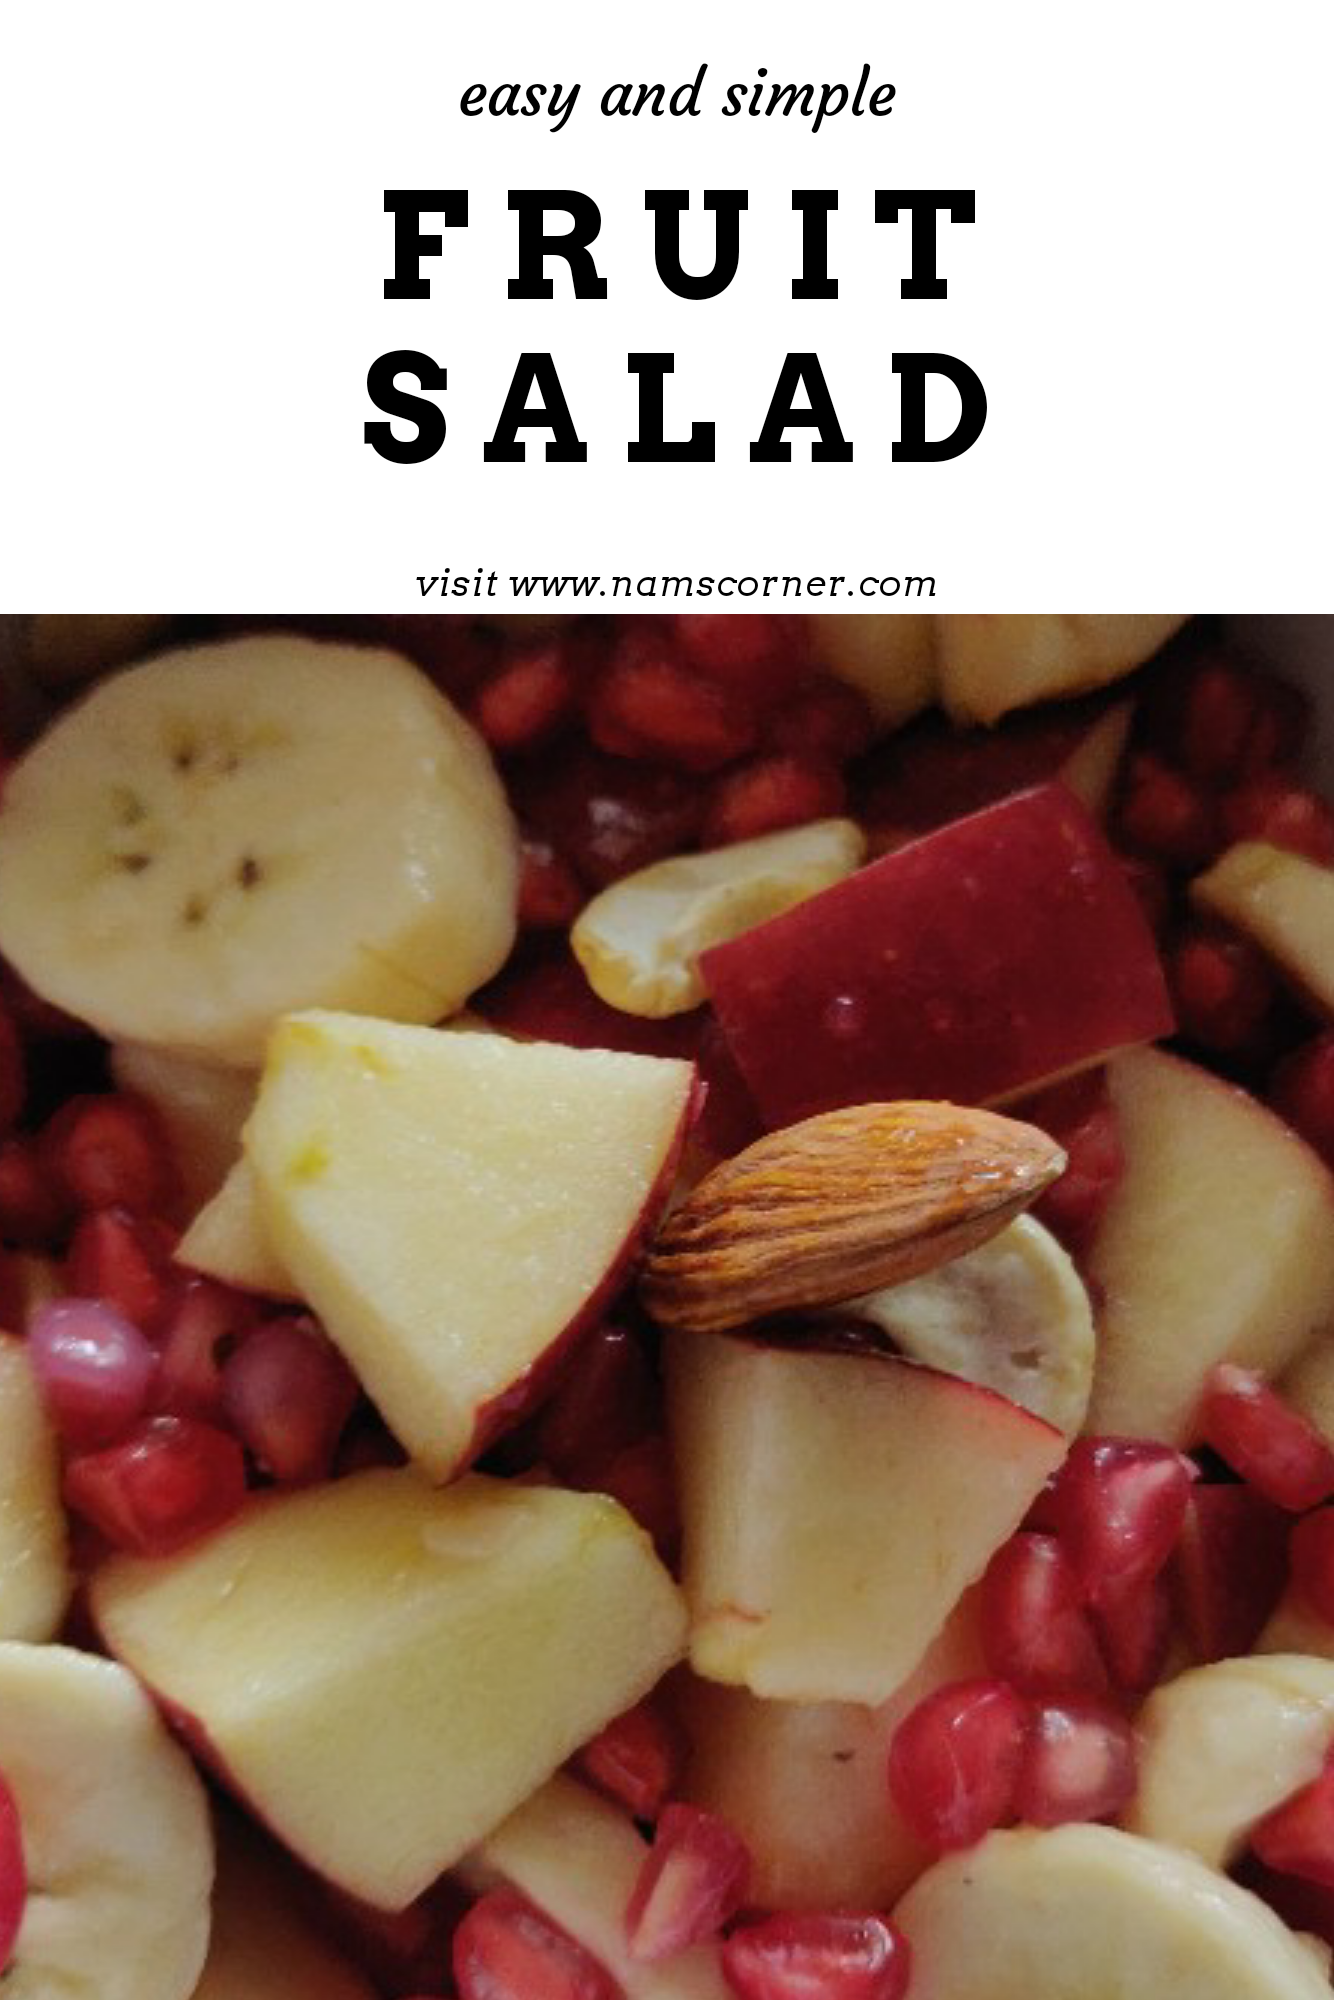 fruit_salad - 67069516_2429377710672588_1944902792405581824_n.png